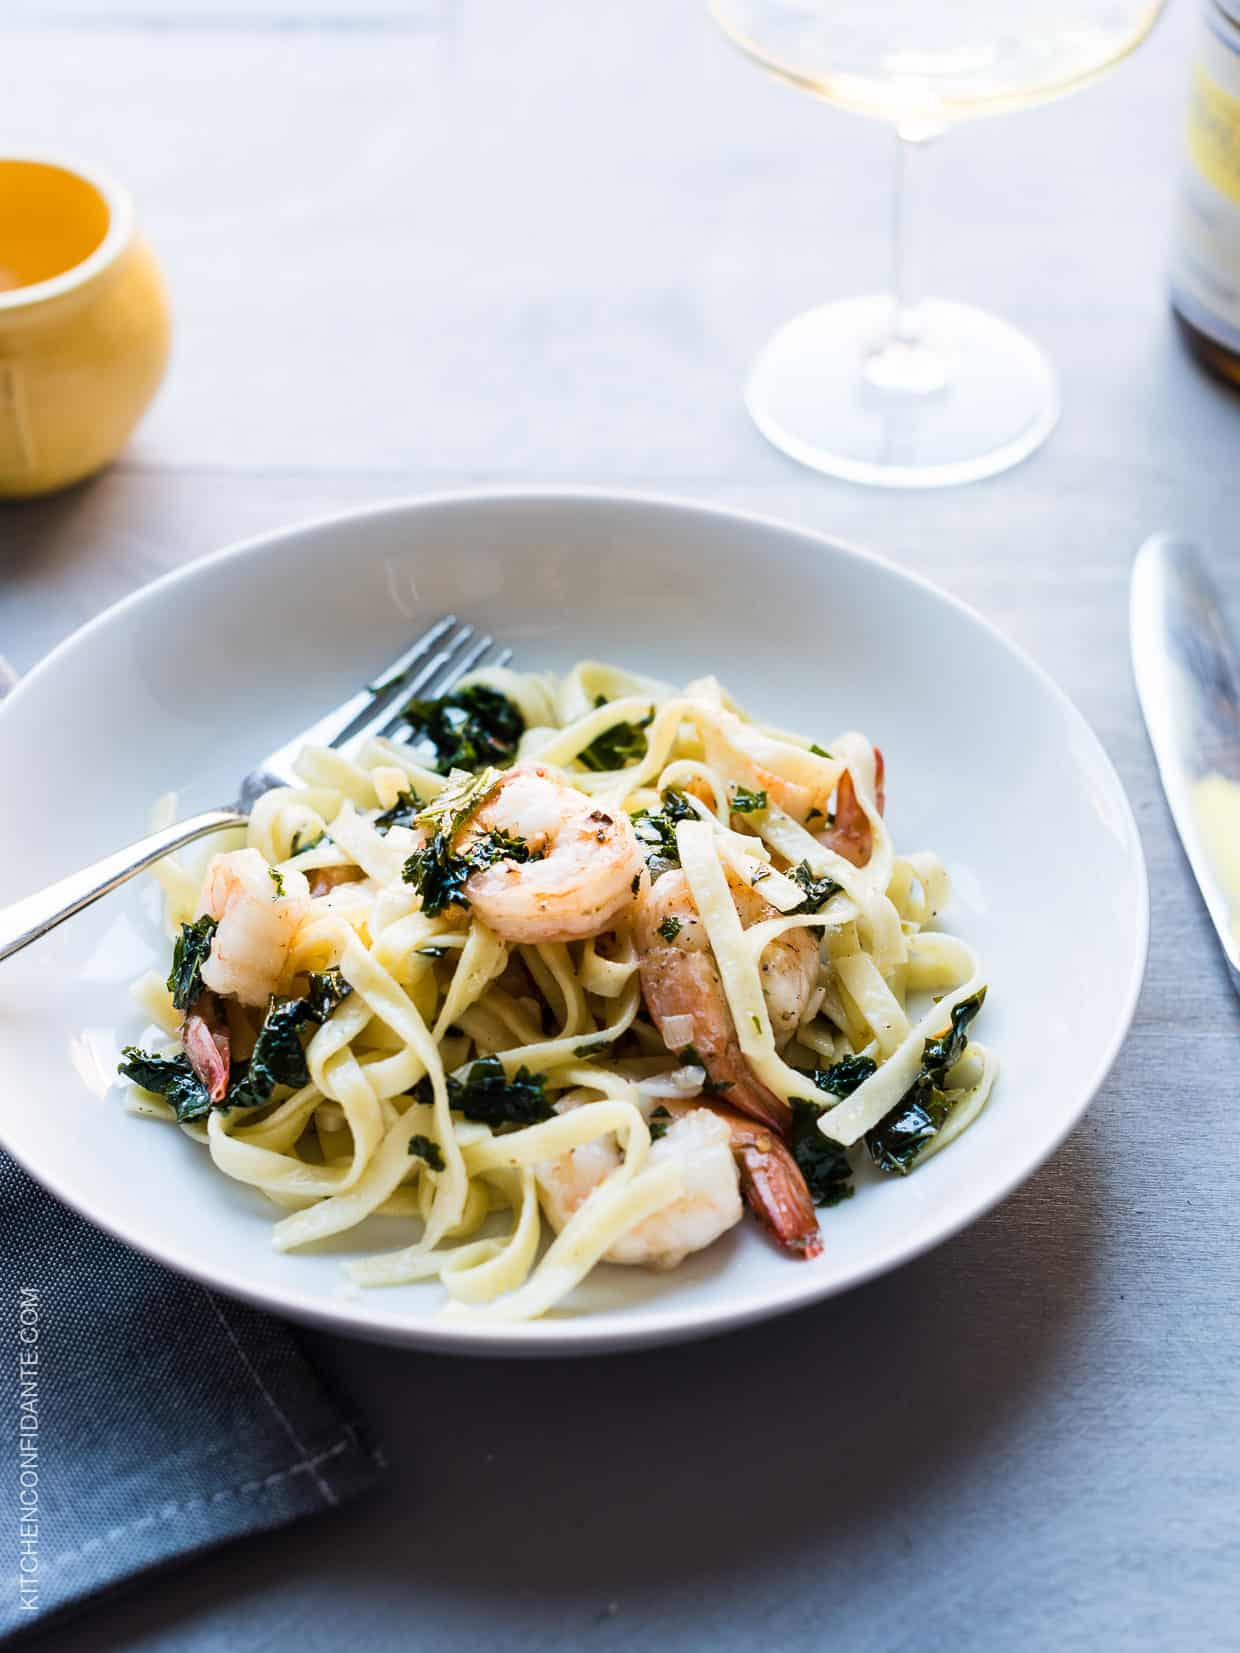 With shrimp that cooks up in minutes, this Kale and Shrimp Scampi cooks in minutes.